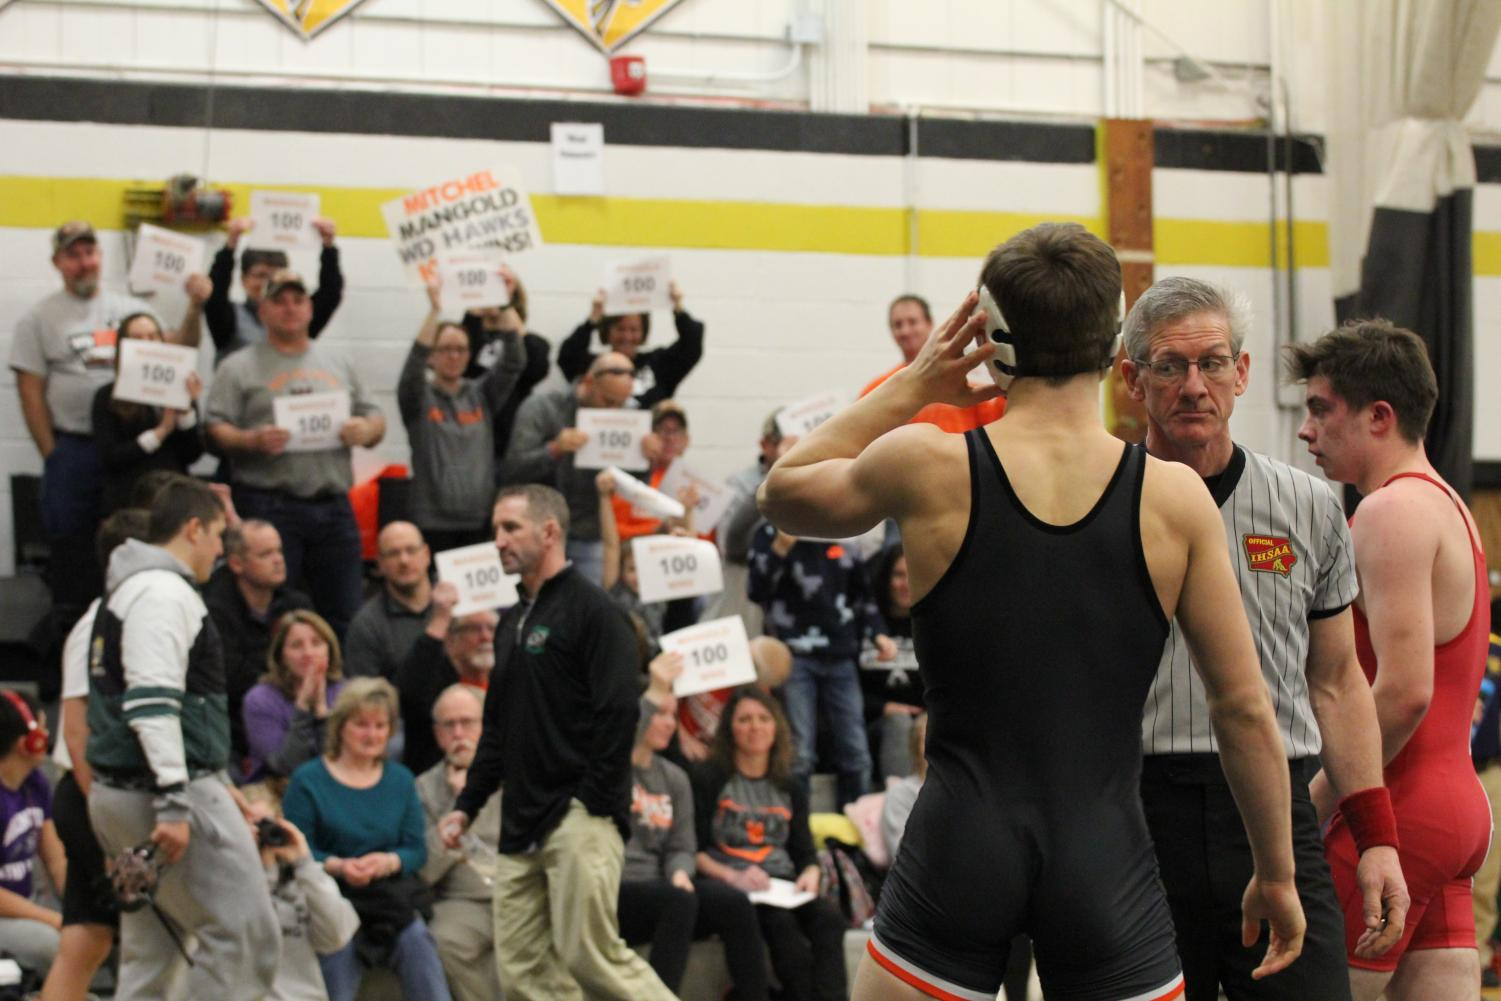 Mitchel Mangold looks to the crowd as he earns his 100th win at Louisa-Muscatine.